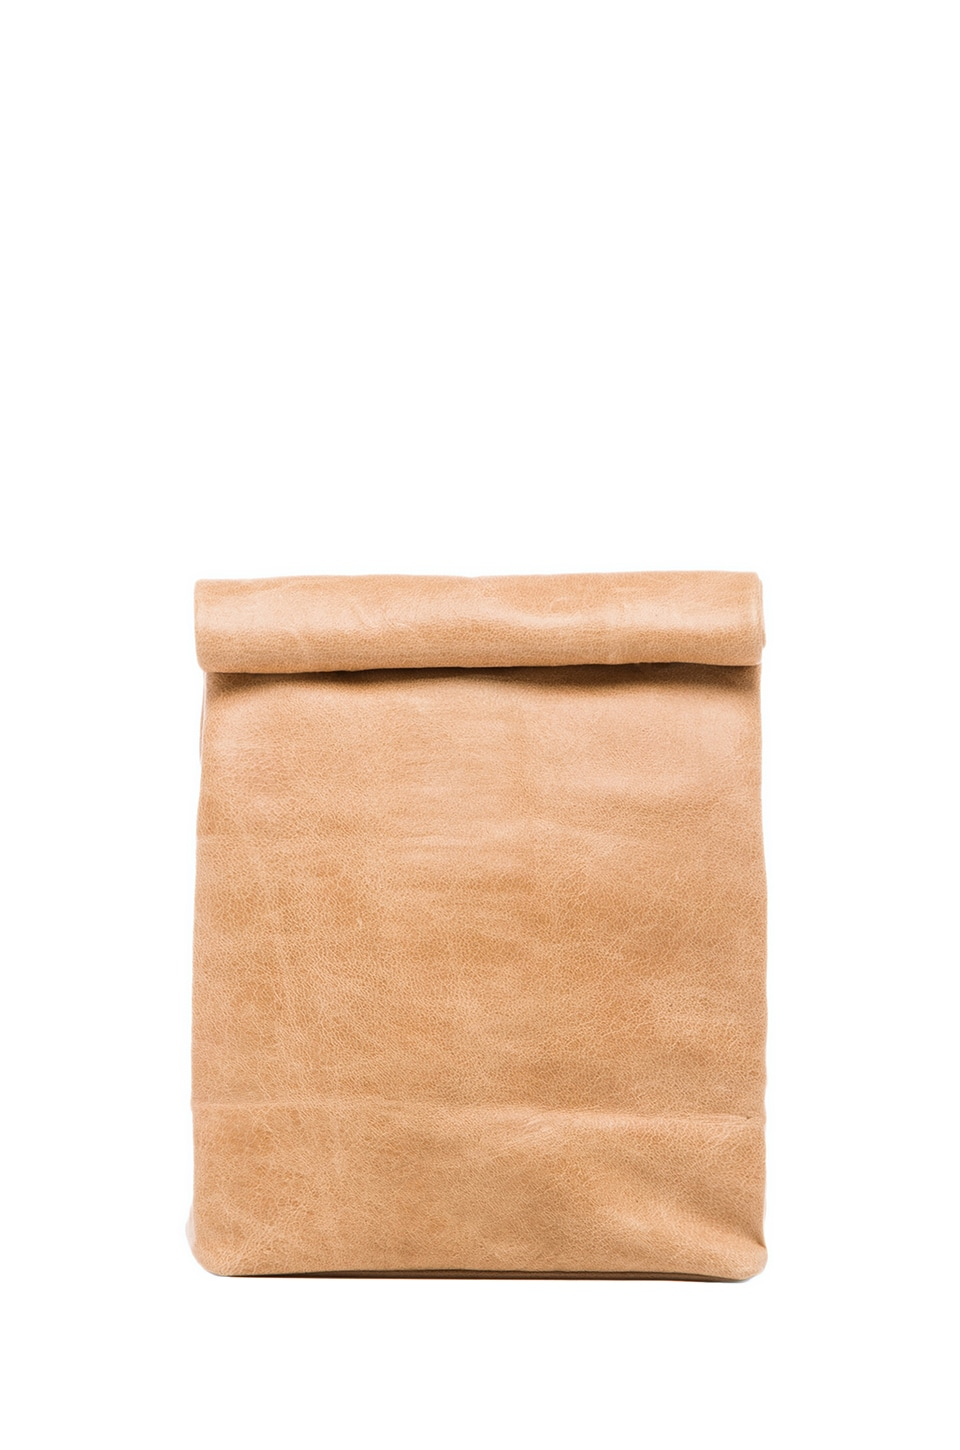 Stampd Small Bodega Bag in Tan